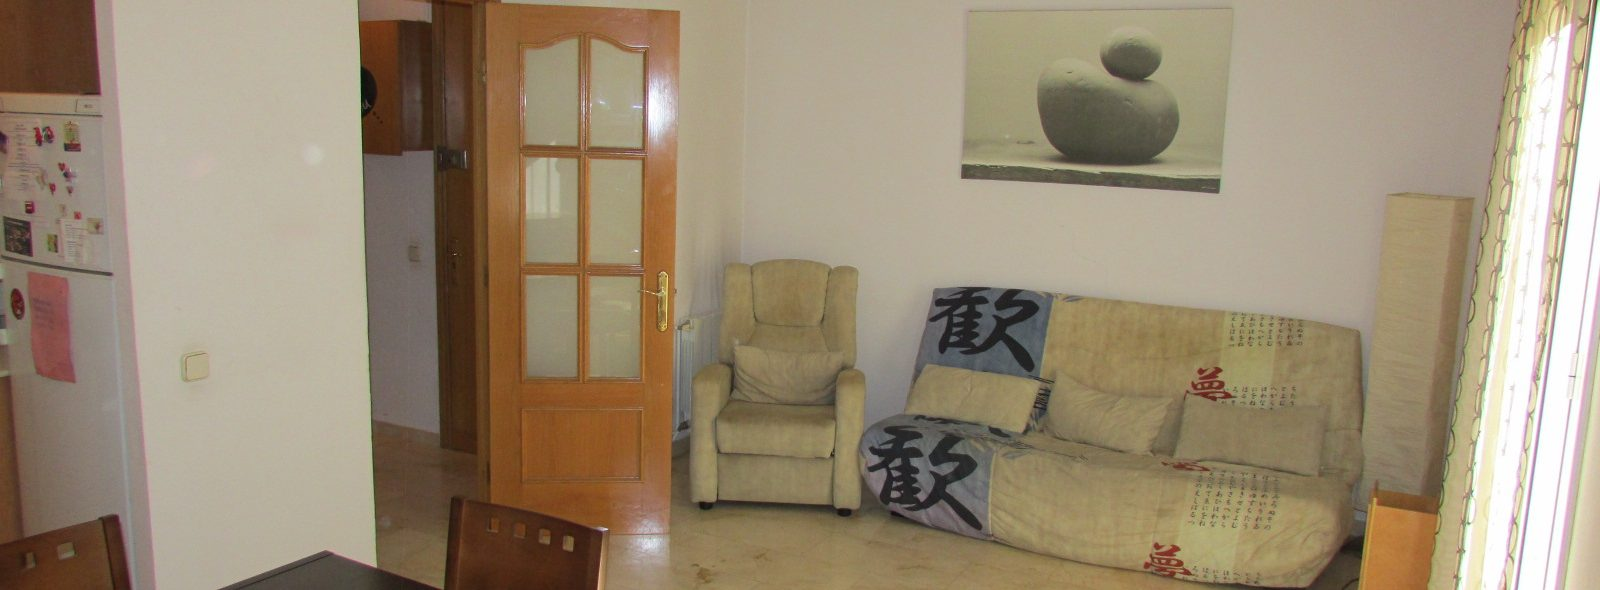 FLAT OF 75 m2 IN COLLBLANC